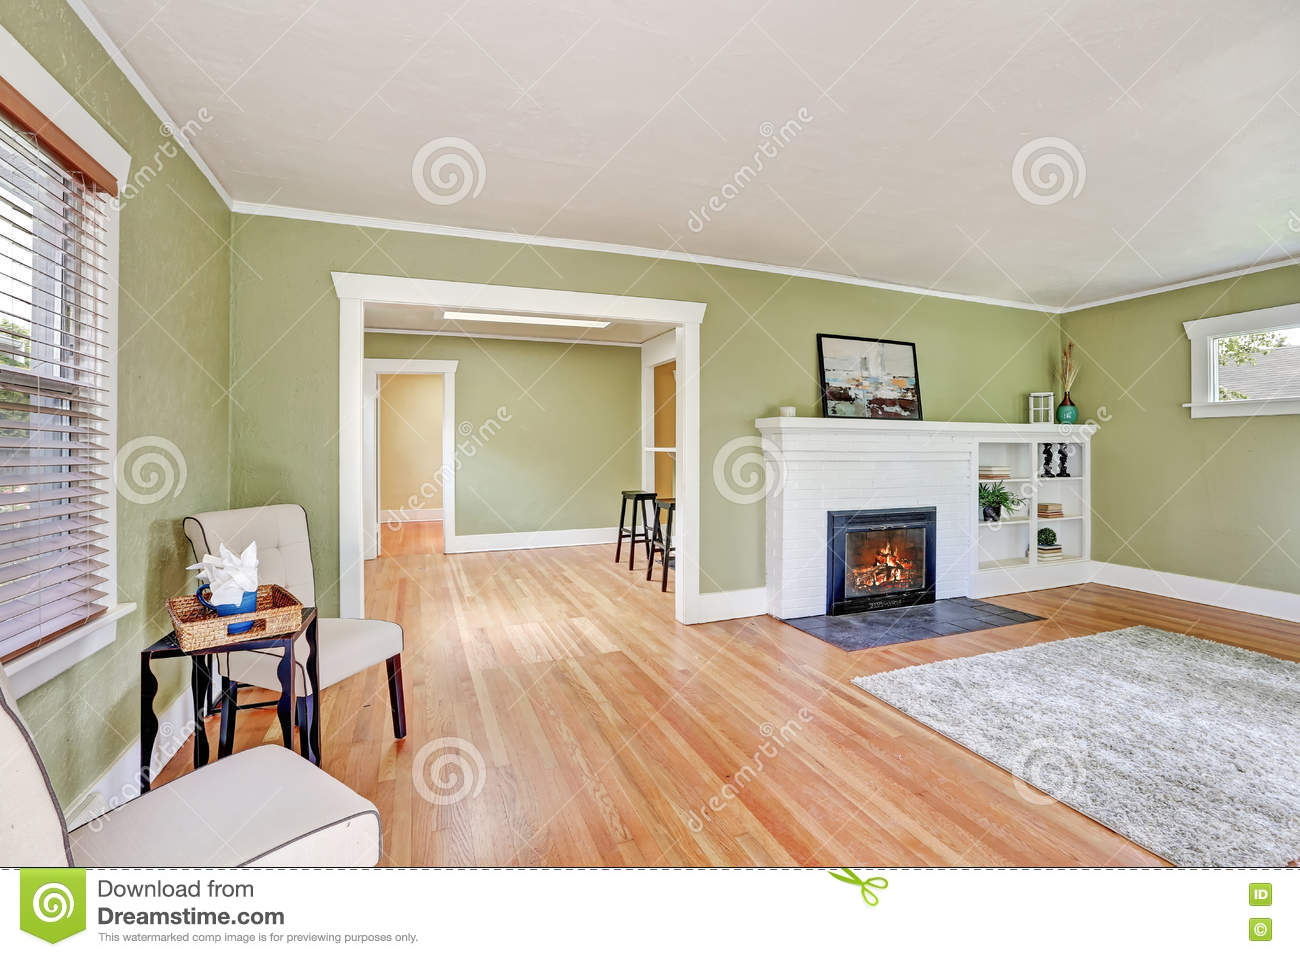 Living Room Interior Design Of Craftsman House Royalty Free Stock Photos